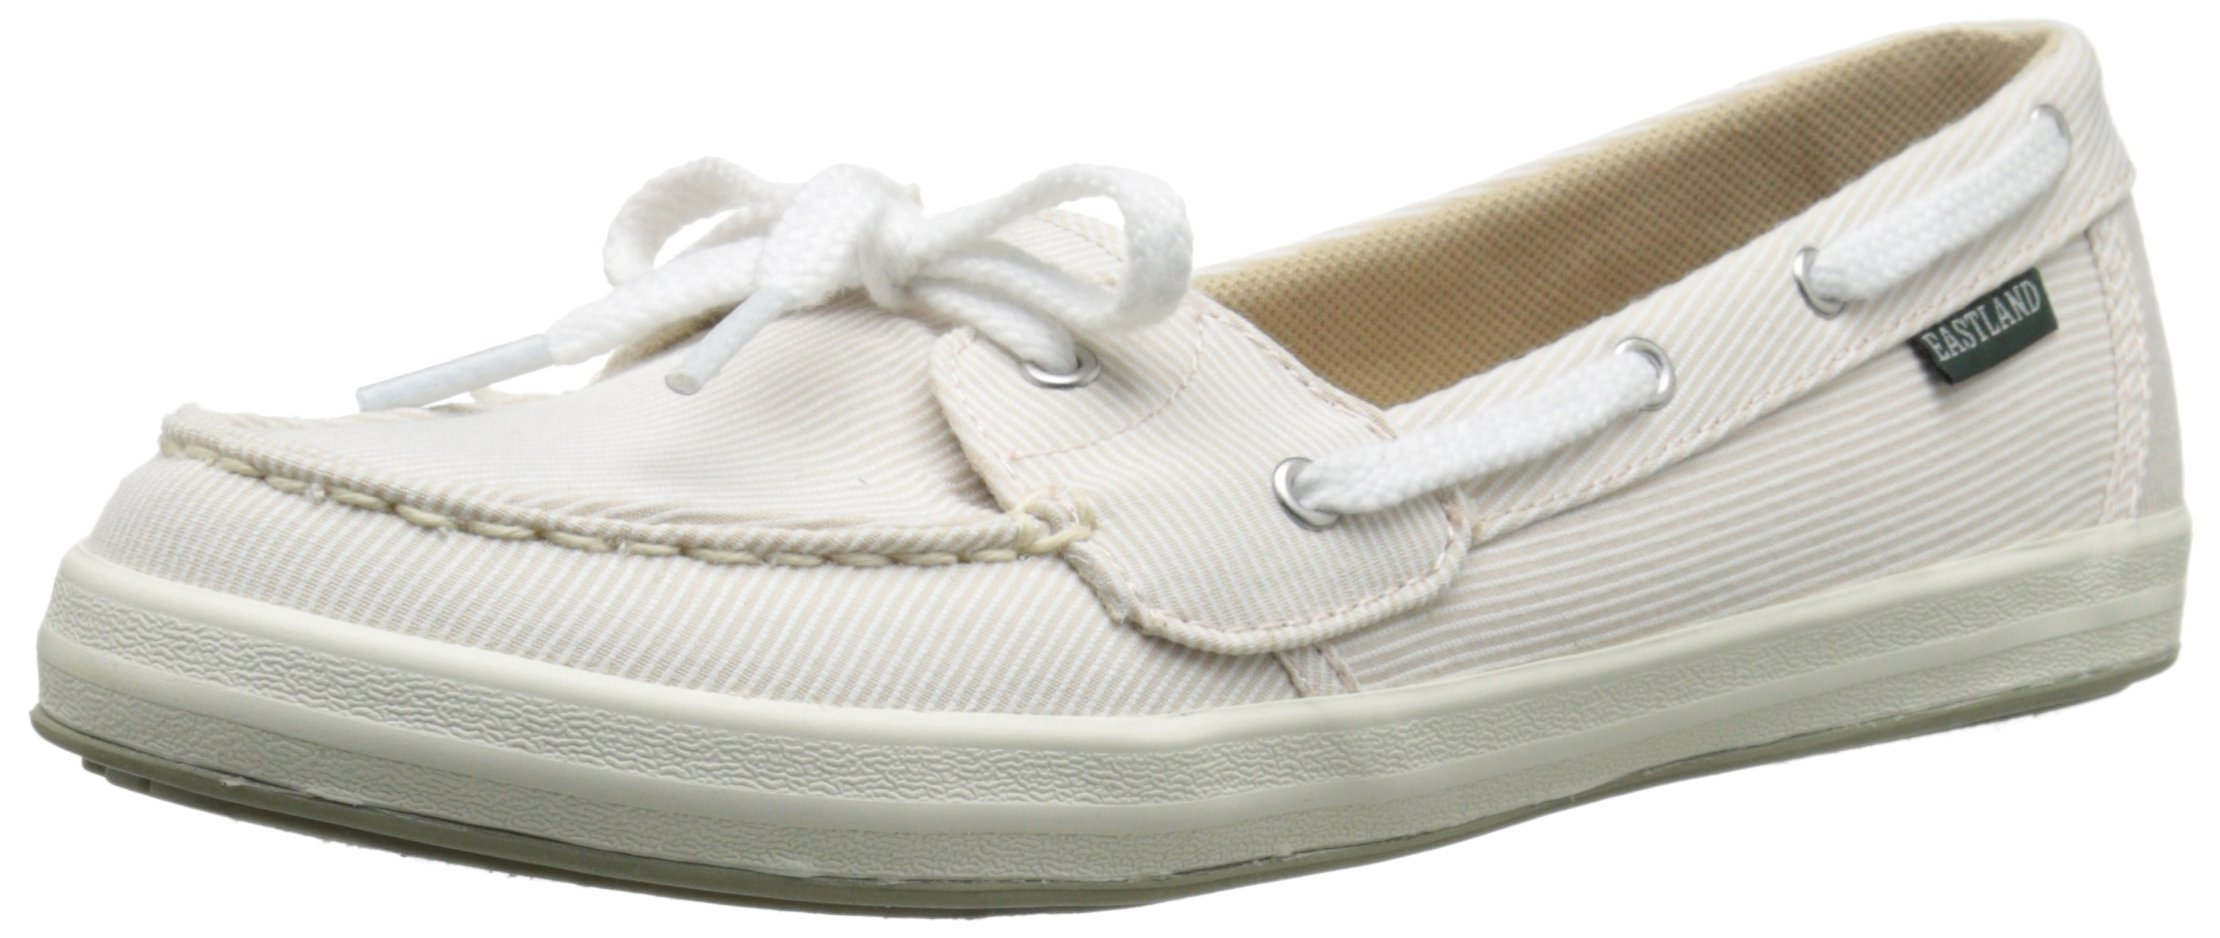 Eastland Women's Skip Boat Shoe, Camel, 9 M US by Eastland